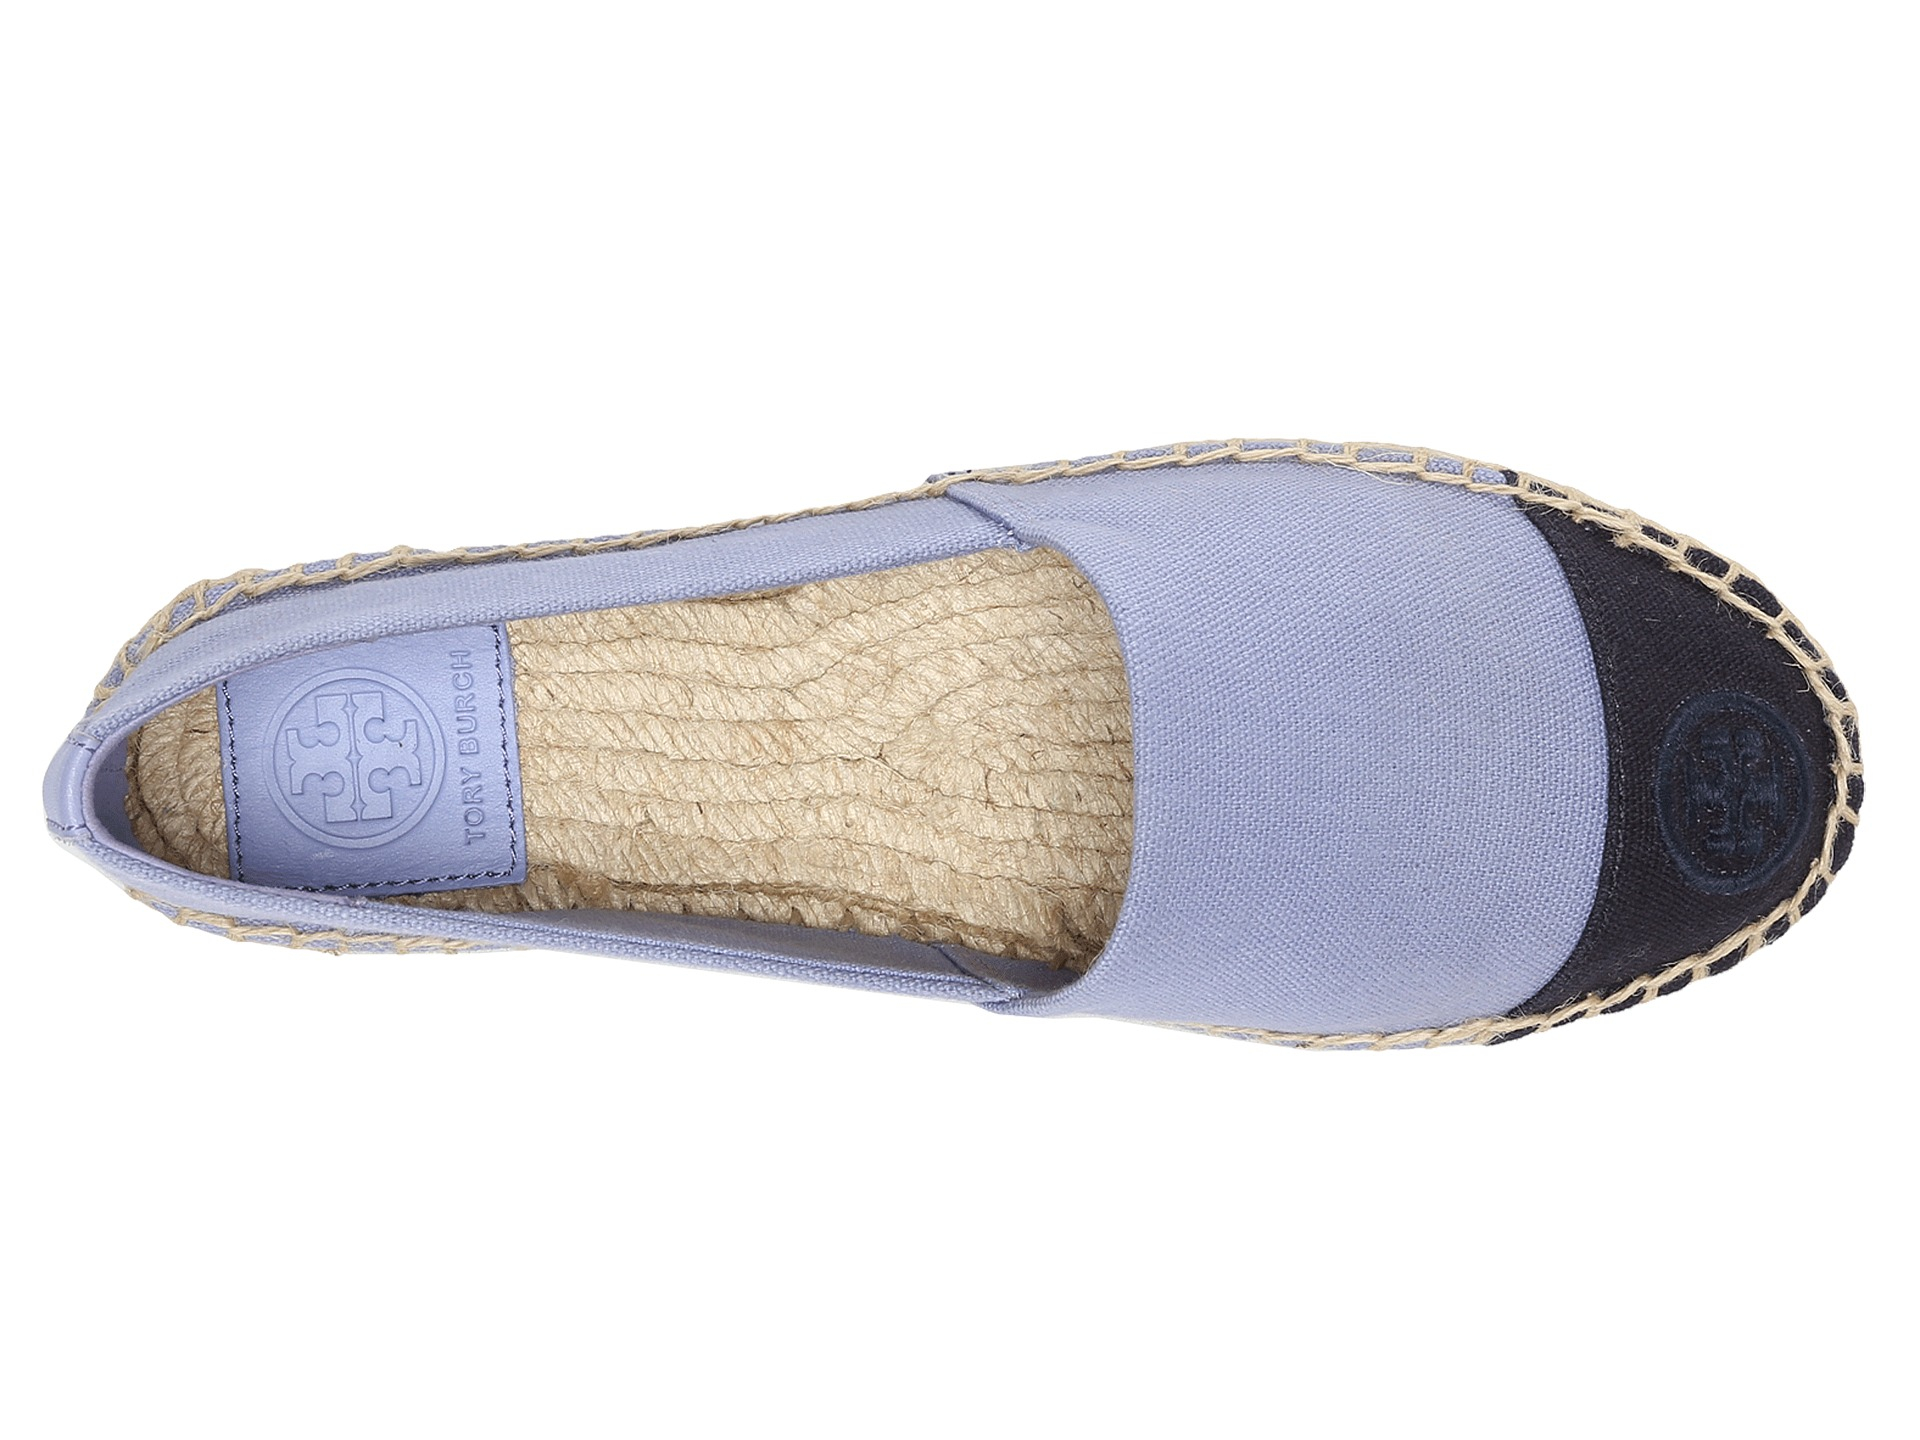 b175a59cbe1 Lyst - Tory Burch Color Block Espadrille in Blue